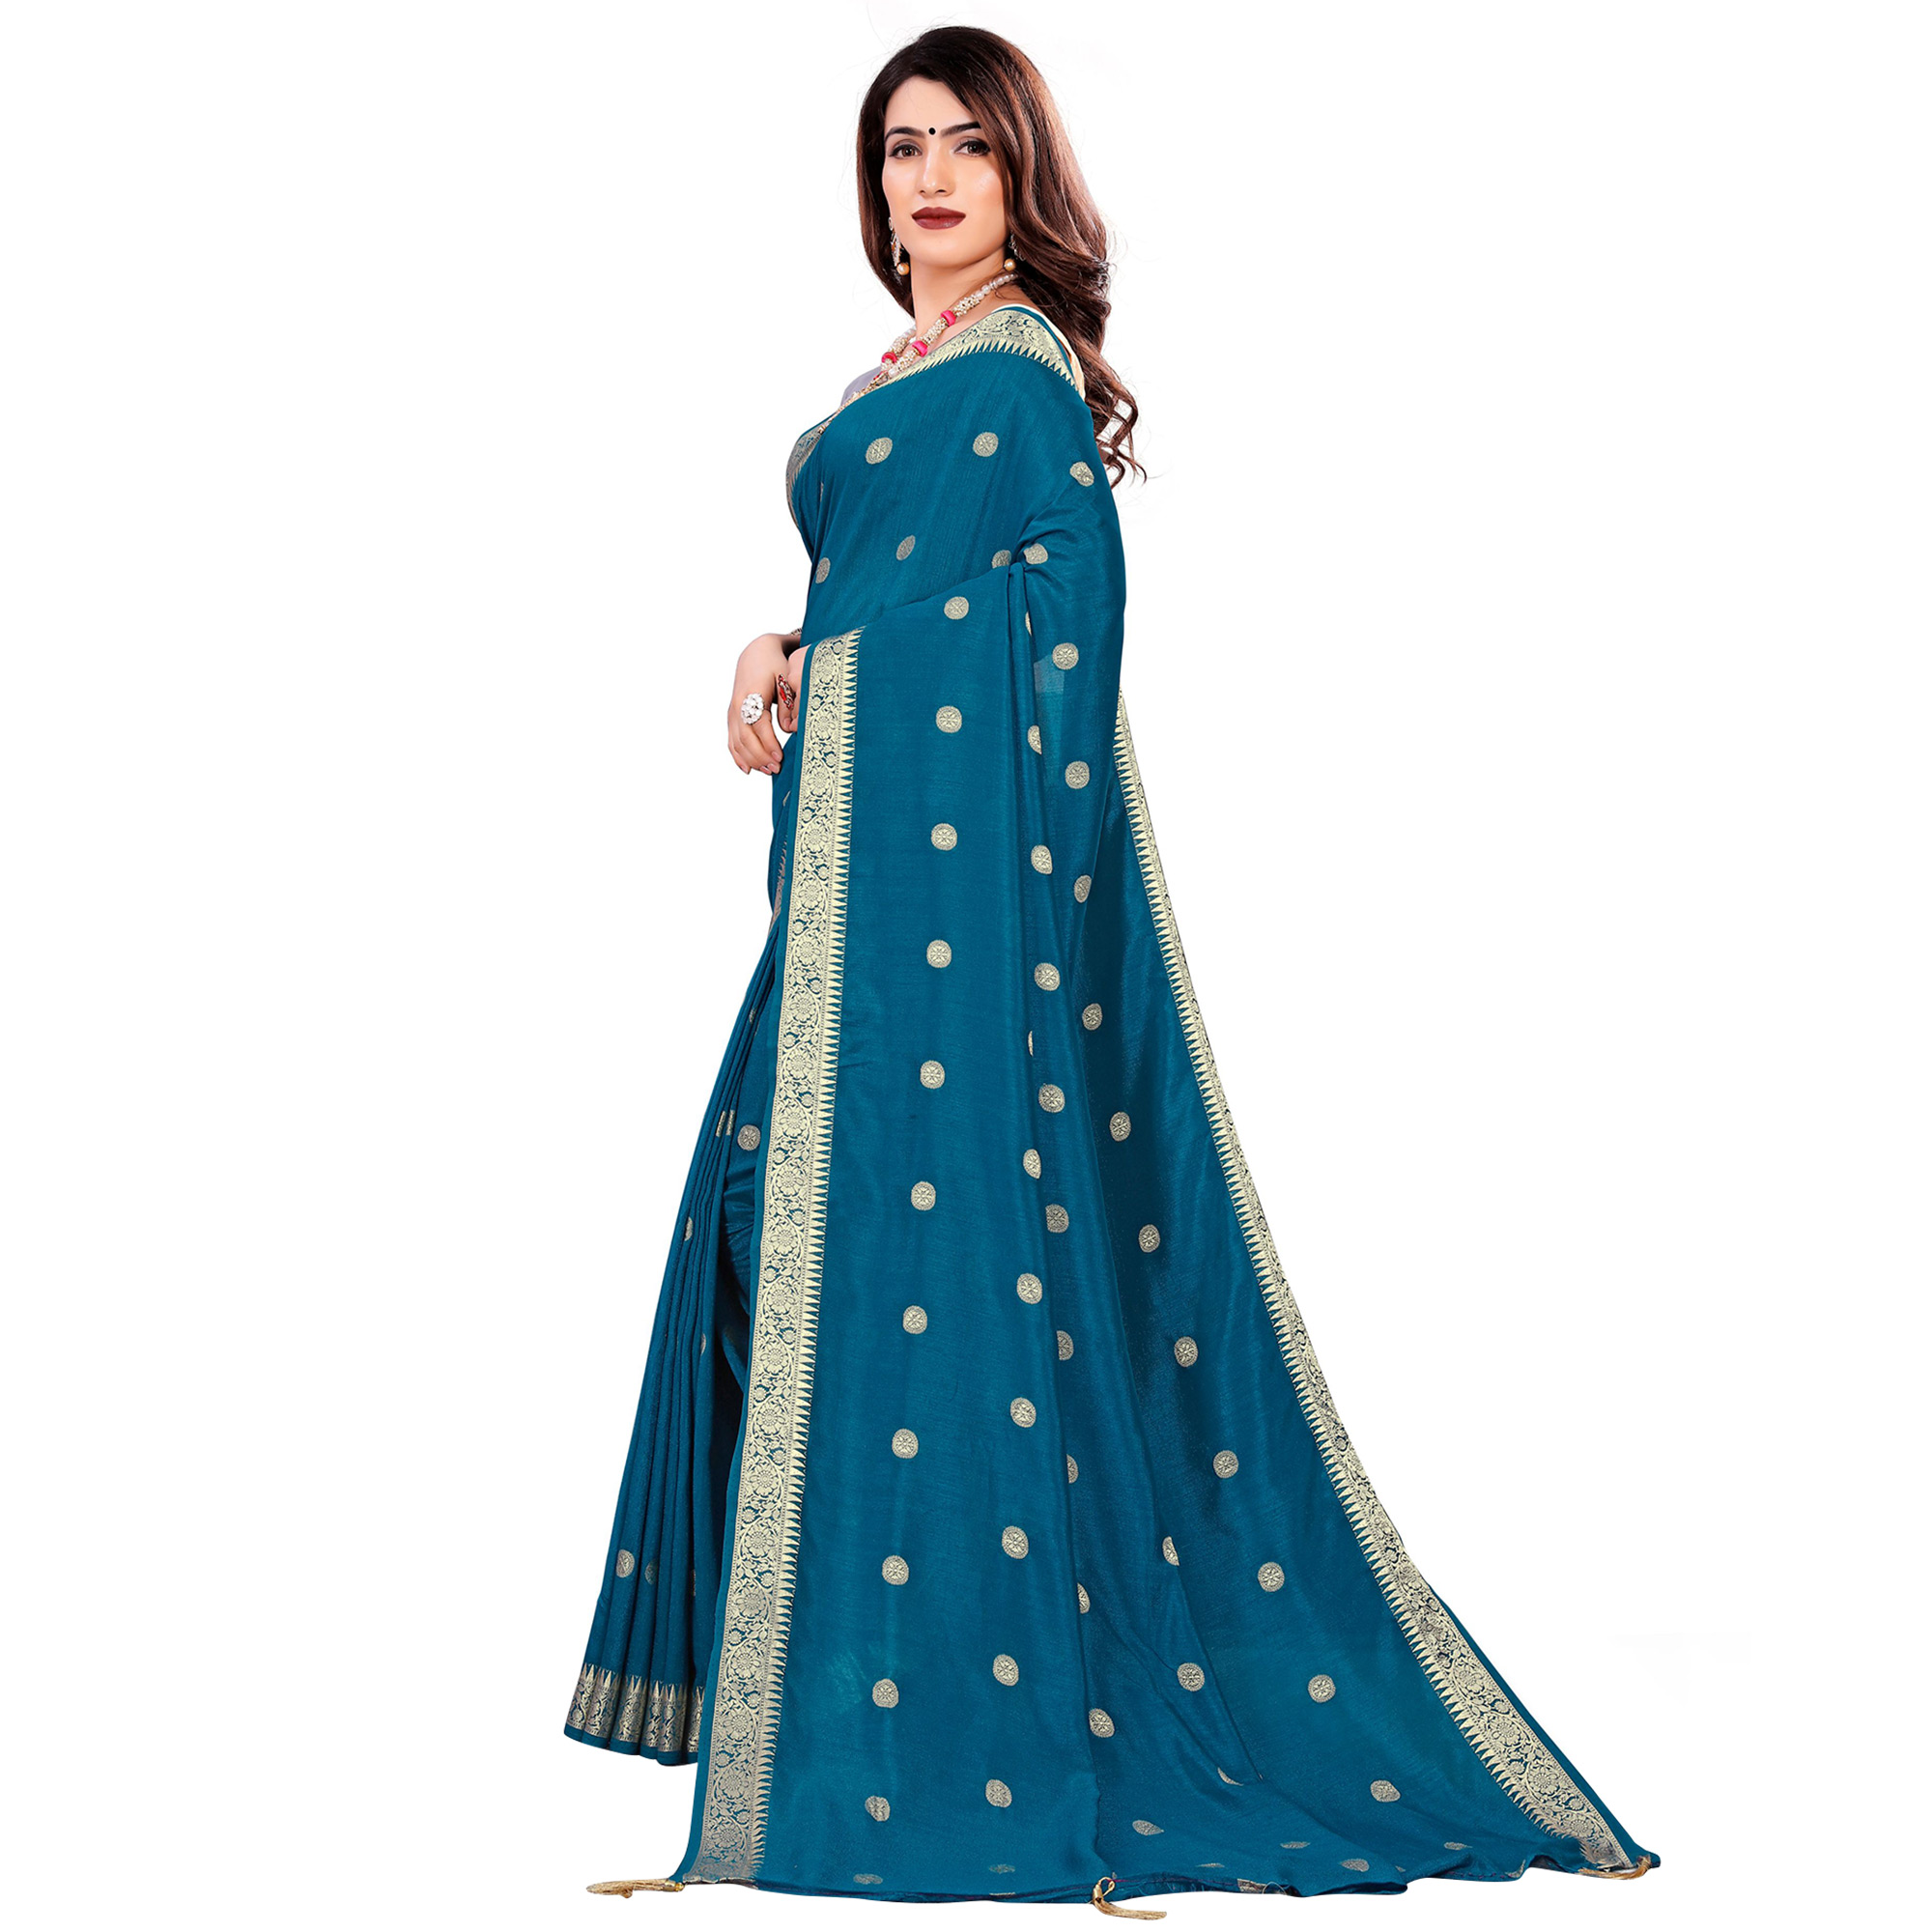 Glorious Teal Blue Colored Casual Wear Embroidered Art Silk Saree With Tassels